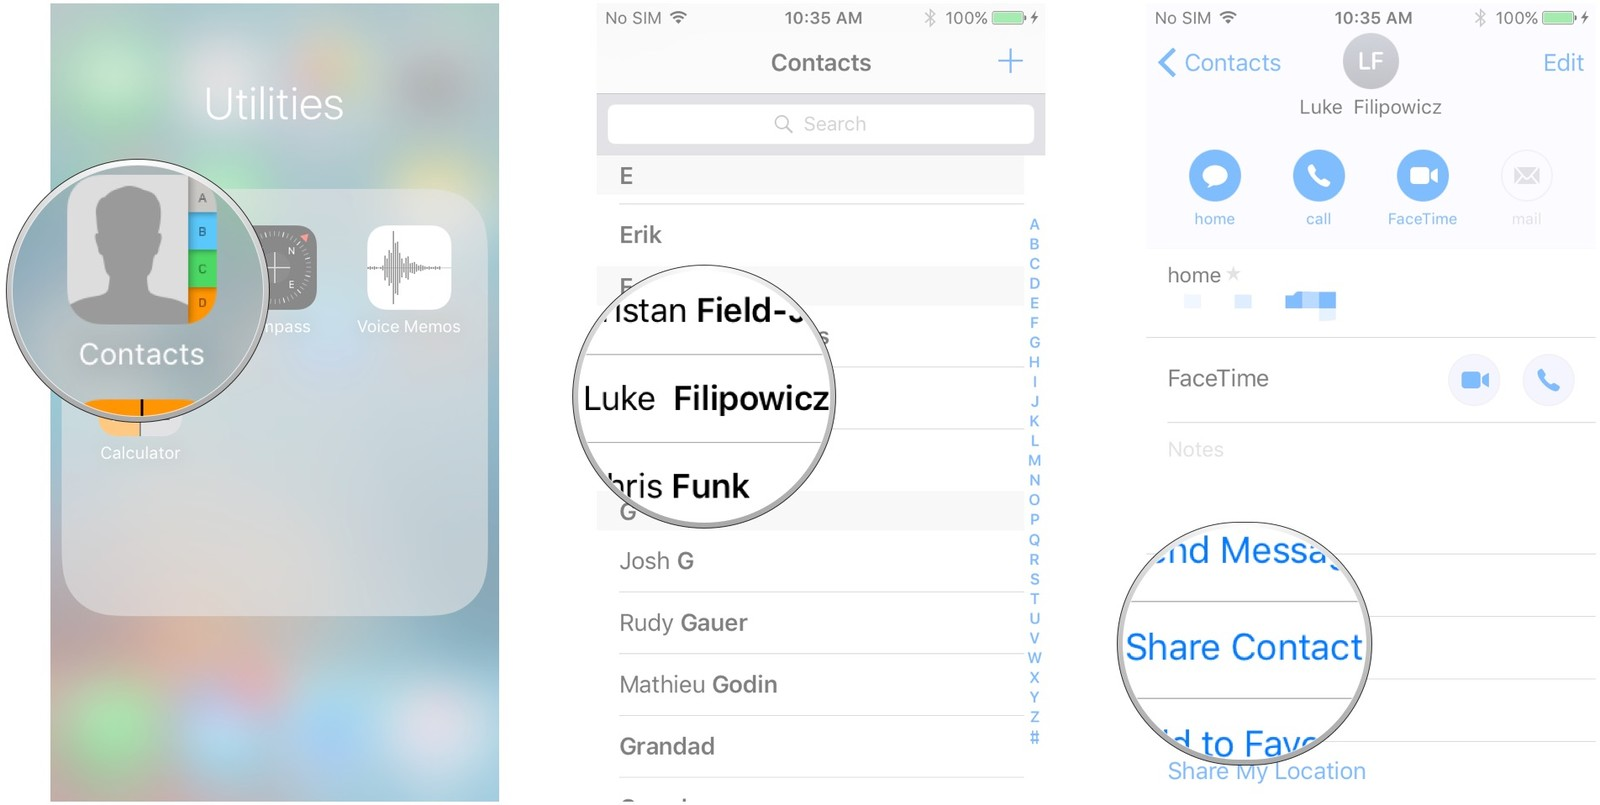 Launch Contacts, tap the contact, tap Share Contact